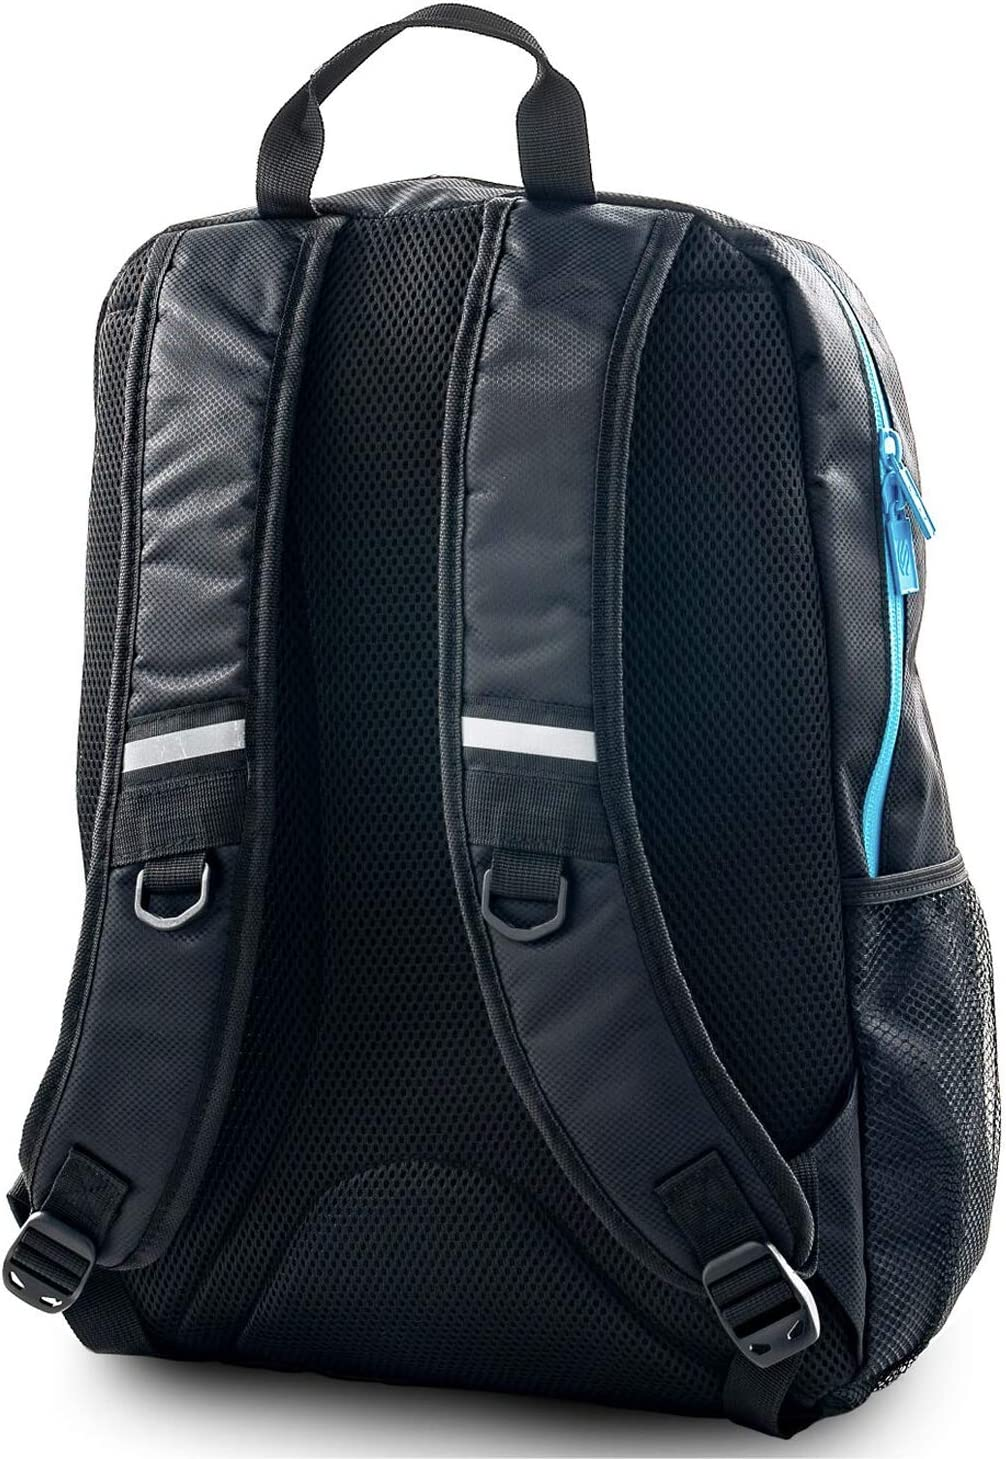 Selkirk Sport Pickleball Backpacks Tour Bags and Sackpacks Day Packs Tour Backpack Red